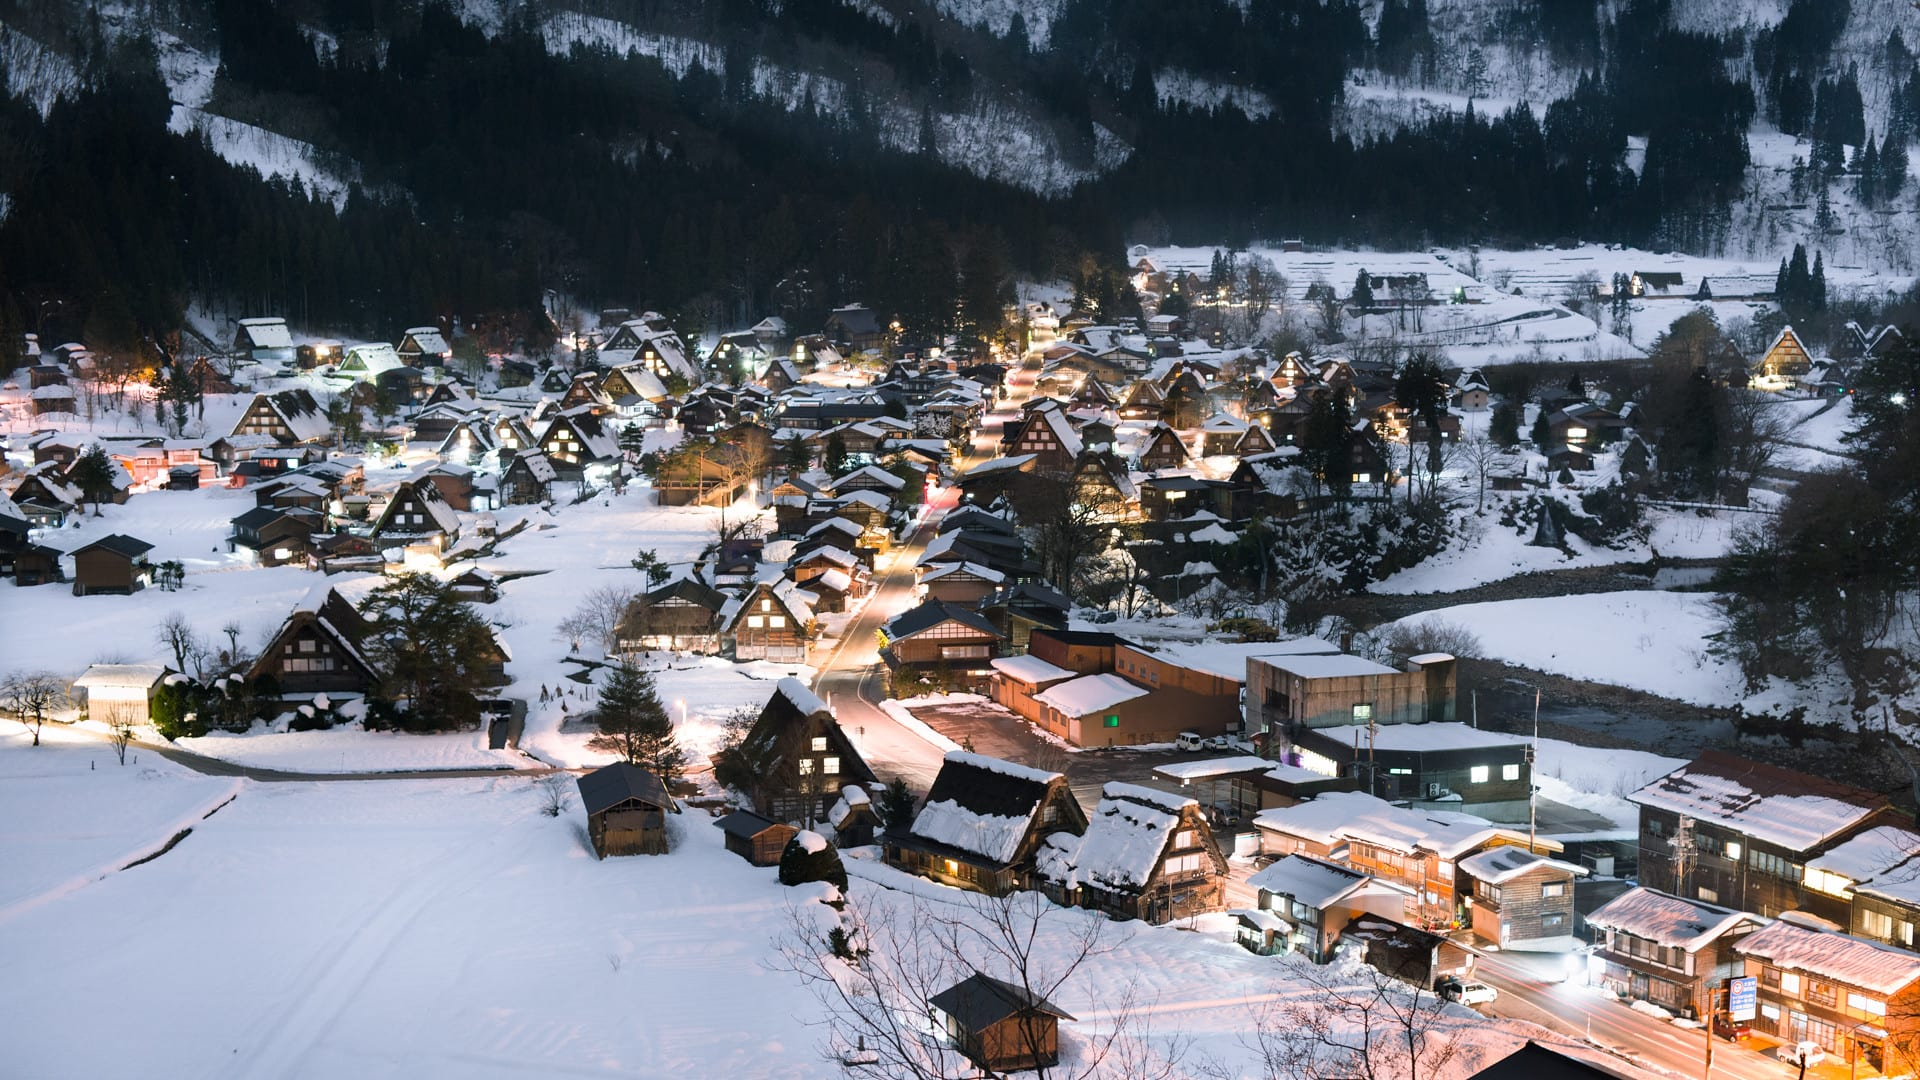 shirakawa-go winter